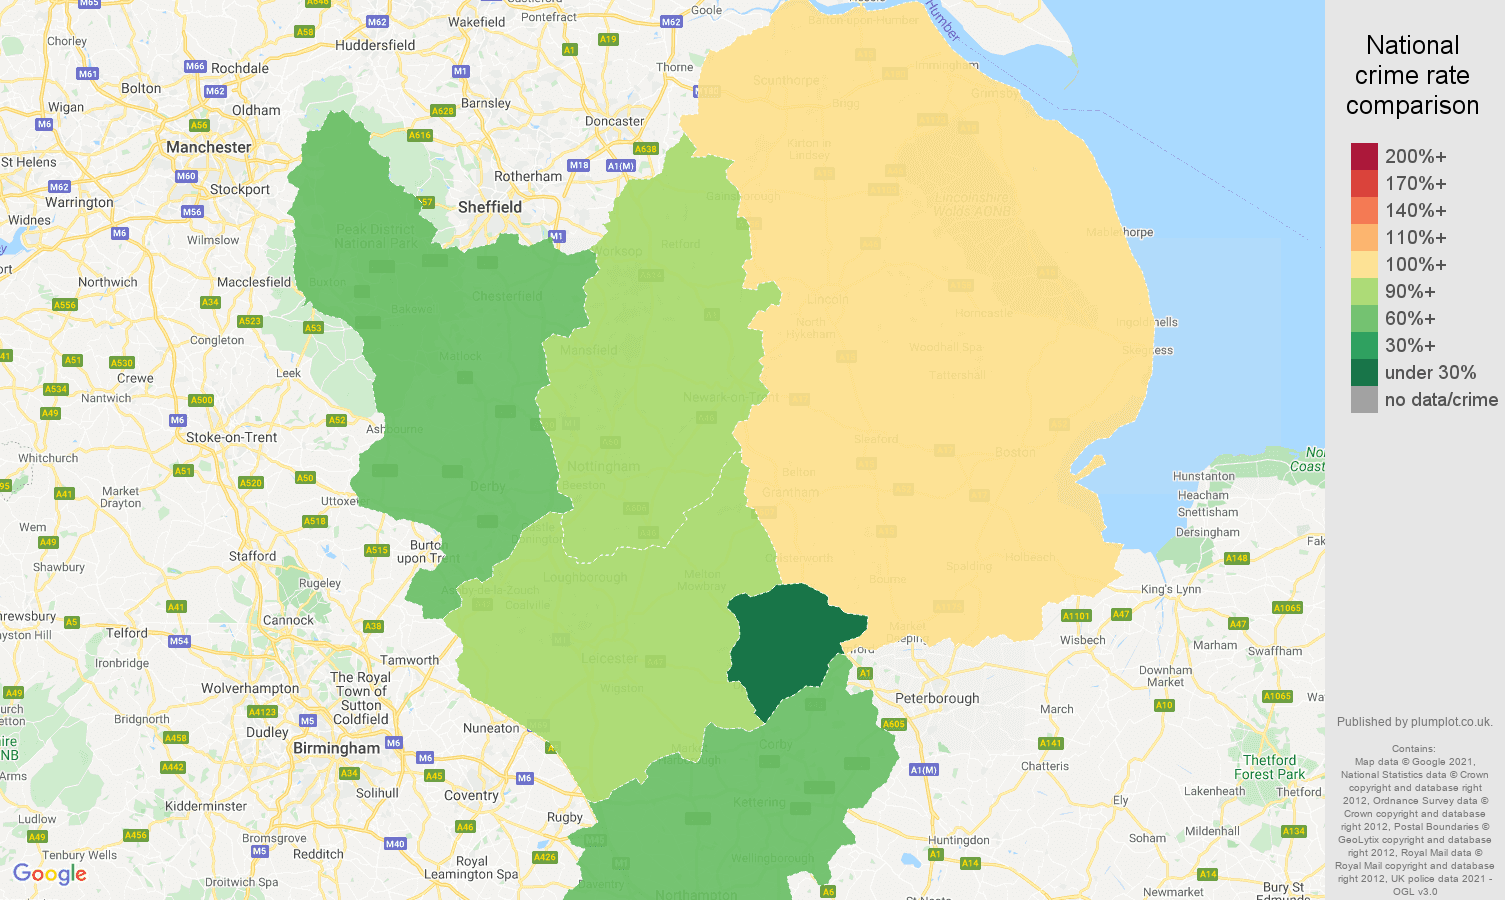 East Midlands bicycle theft crime rate comparison map